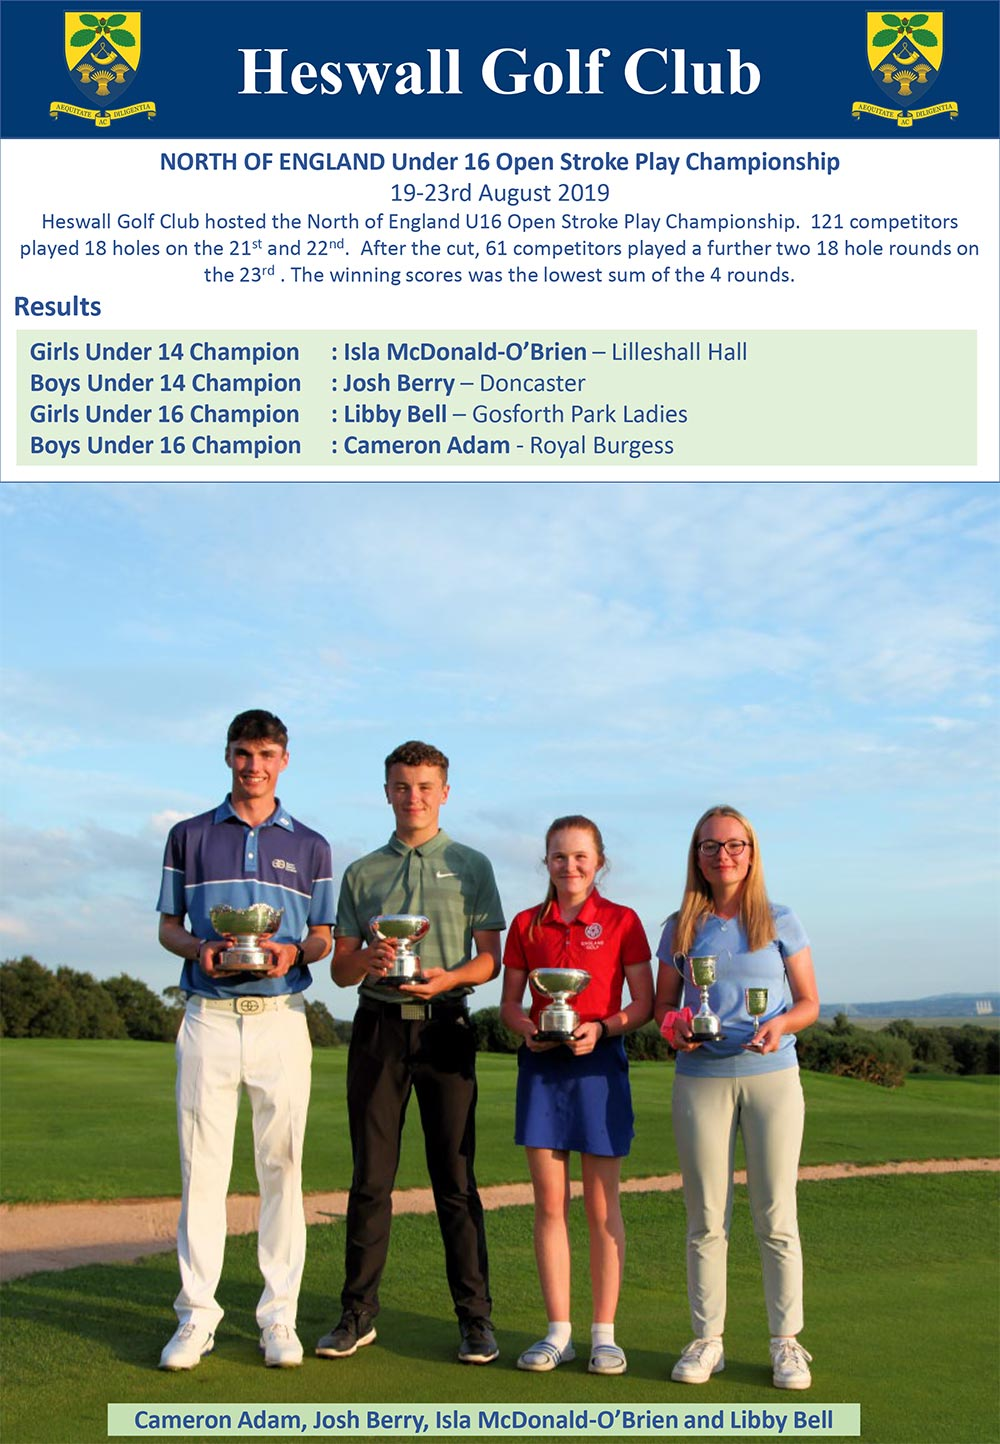 NORTH OF ENGLAND Under 16 Open Stroke Play Championship